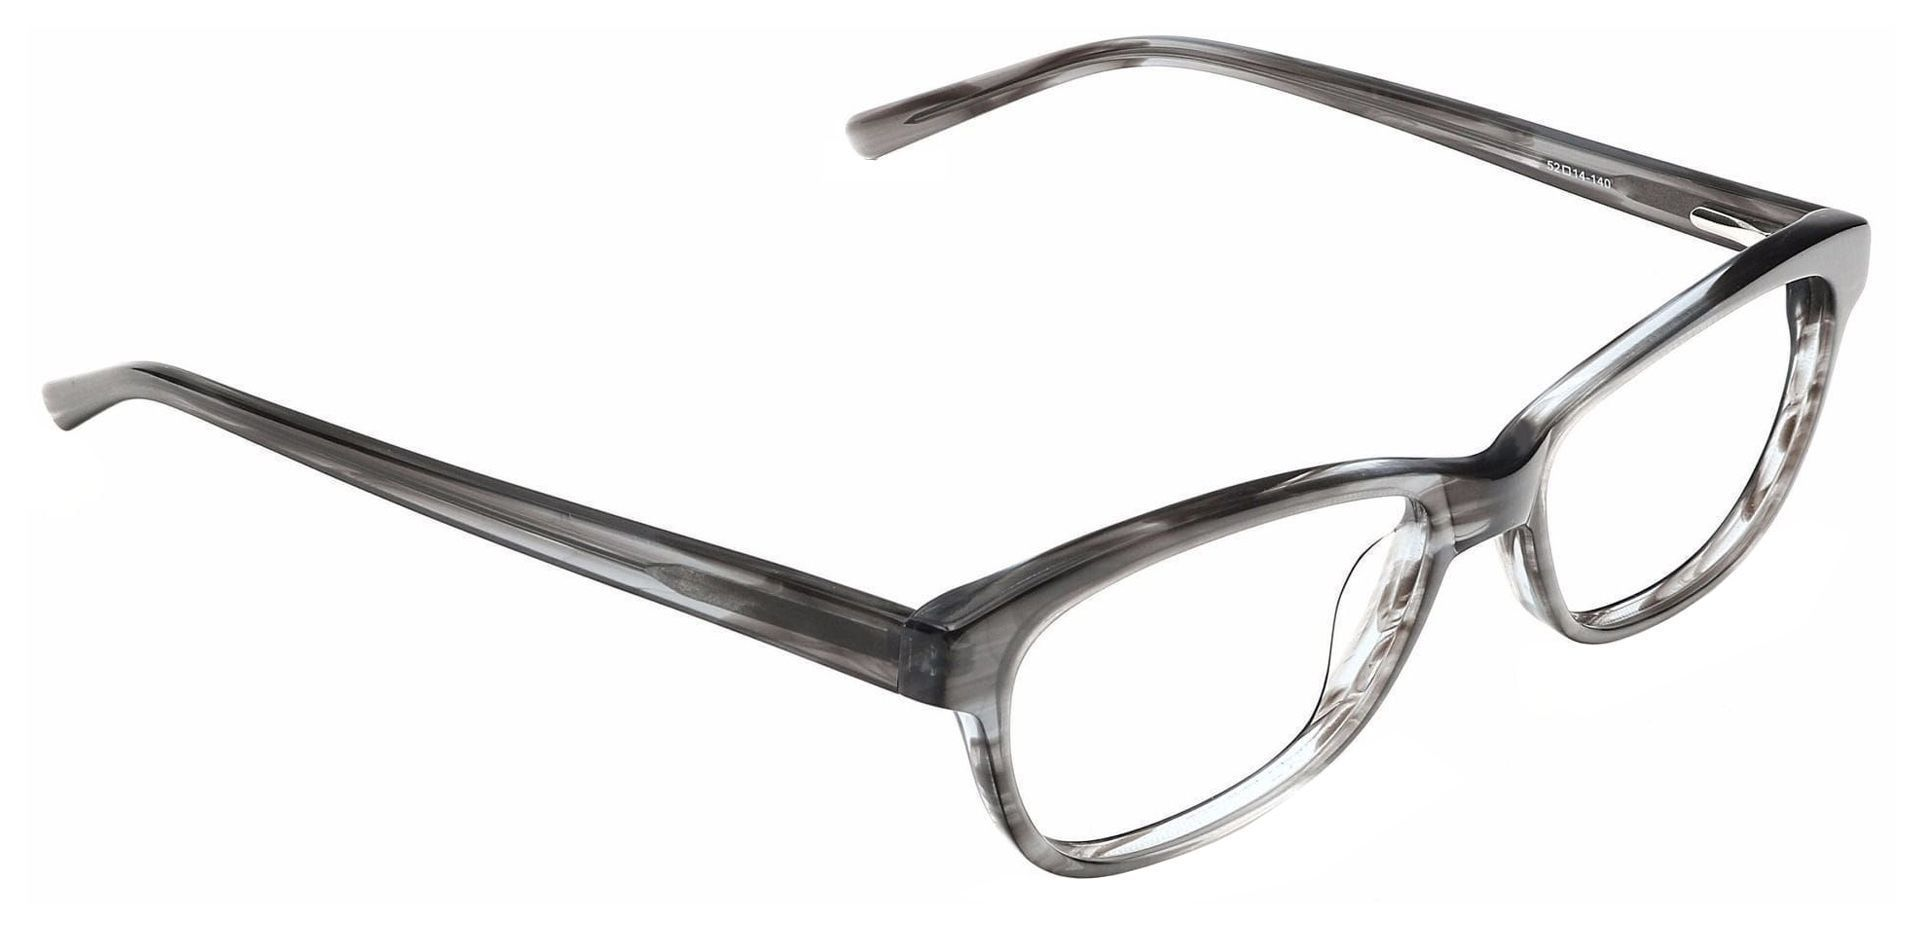 Swell Cat-eye Non-Rx Glasses - Gray